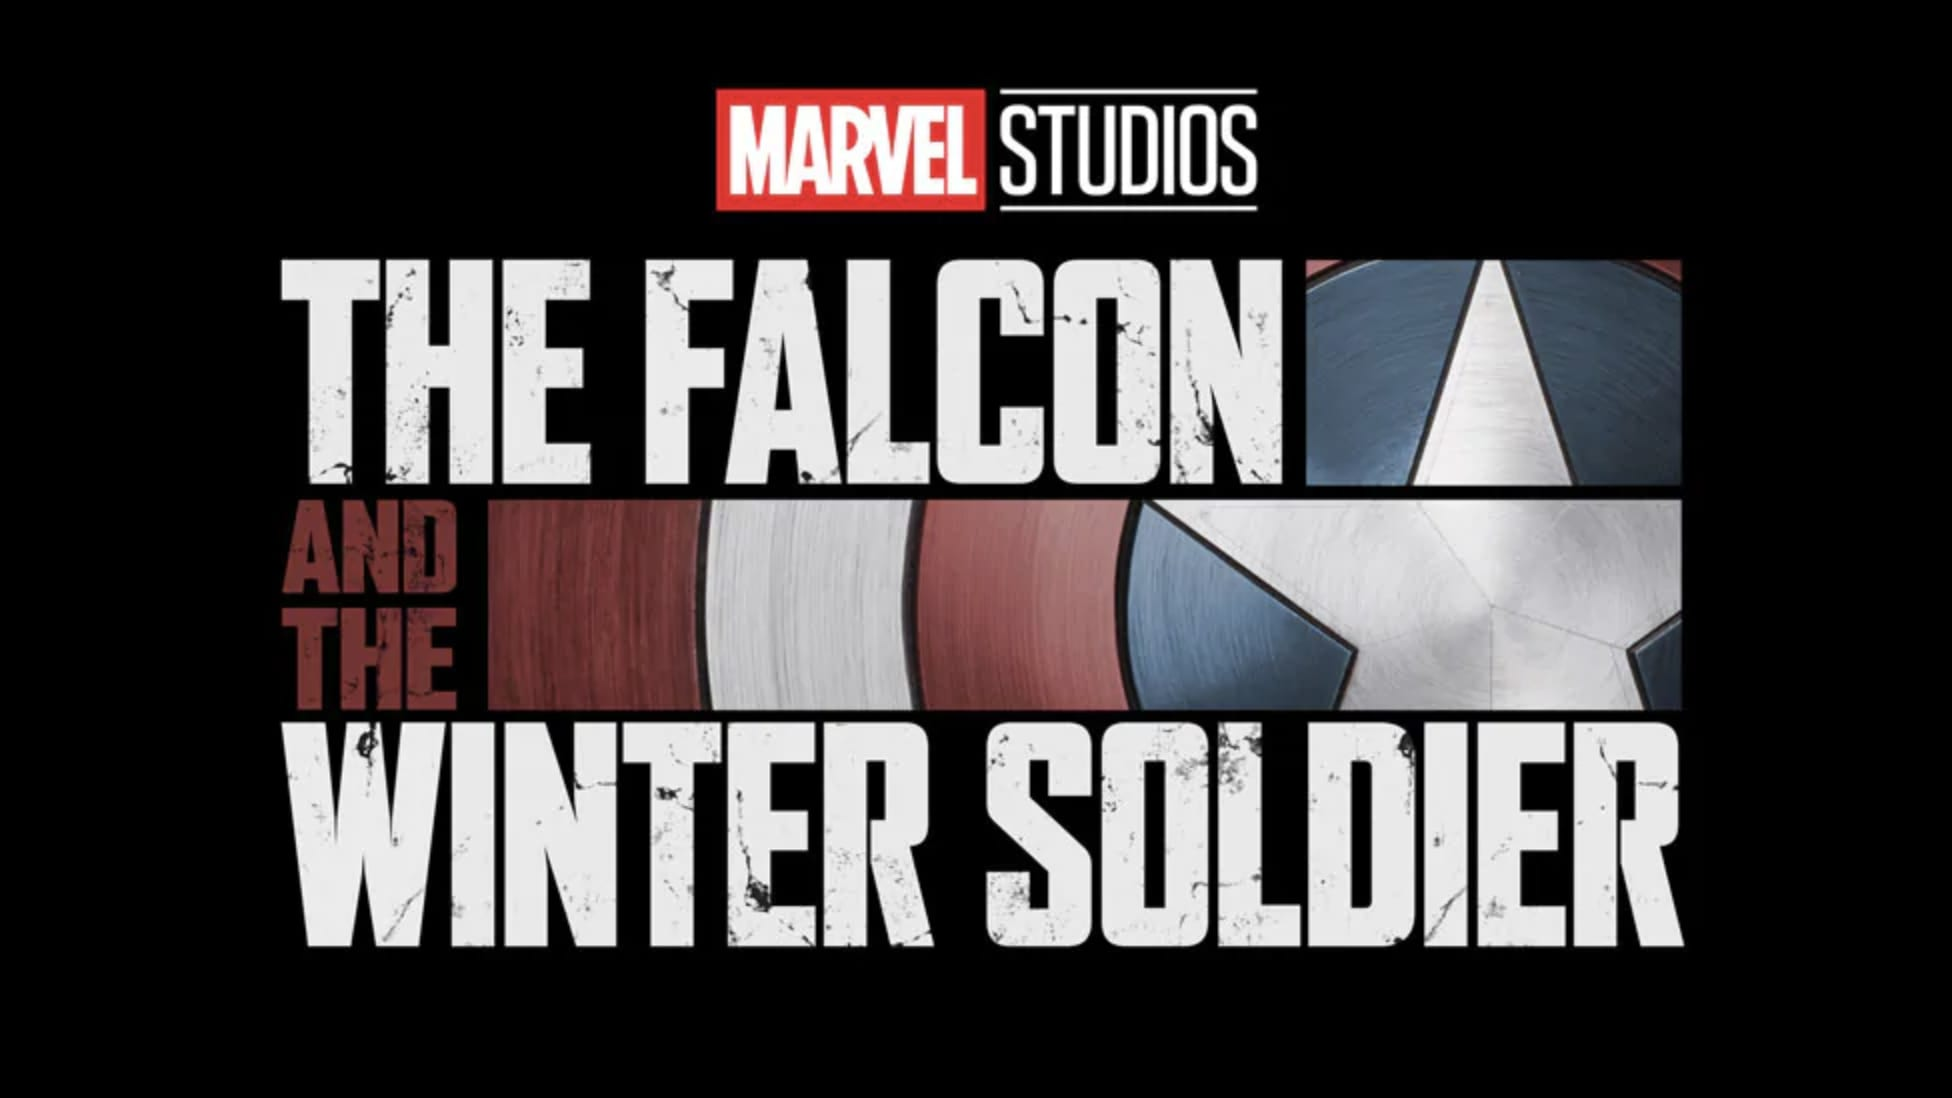 Production Has Begun on The Falcon and the Winter Soldier